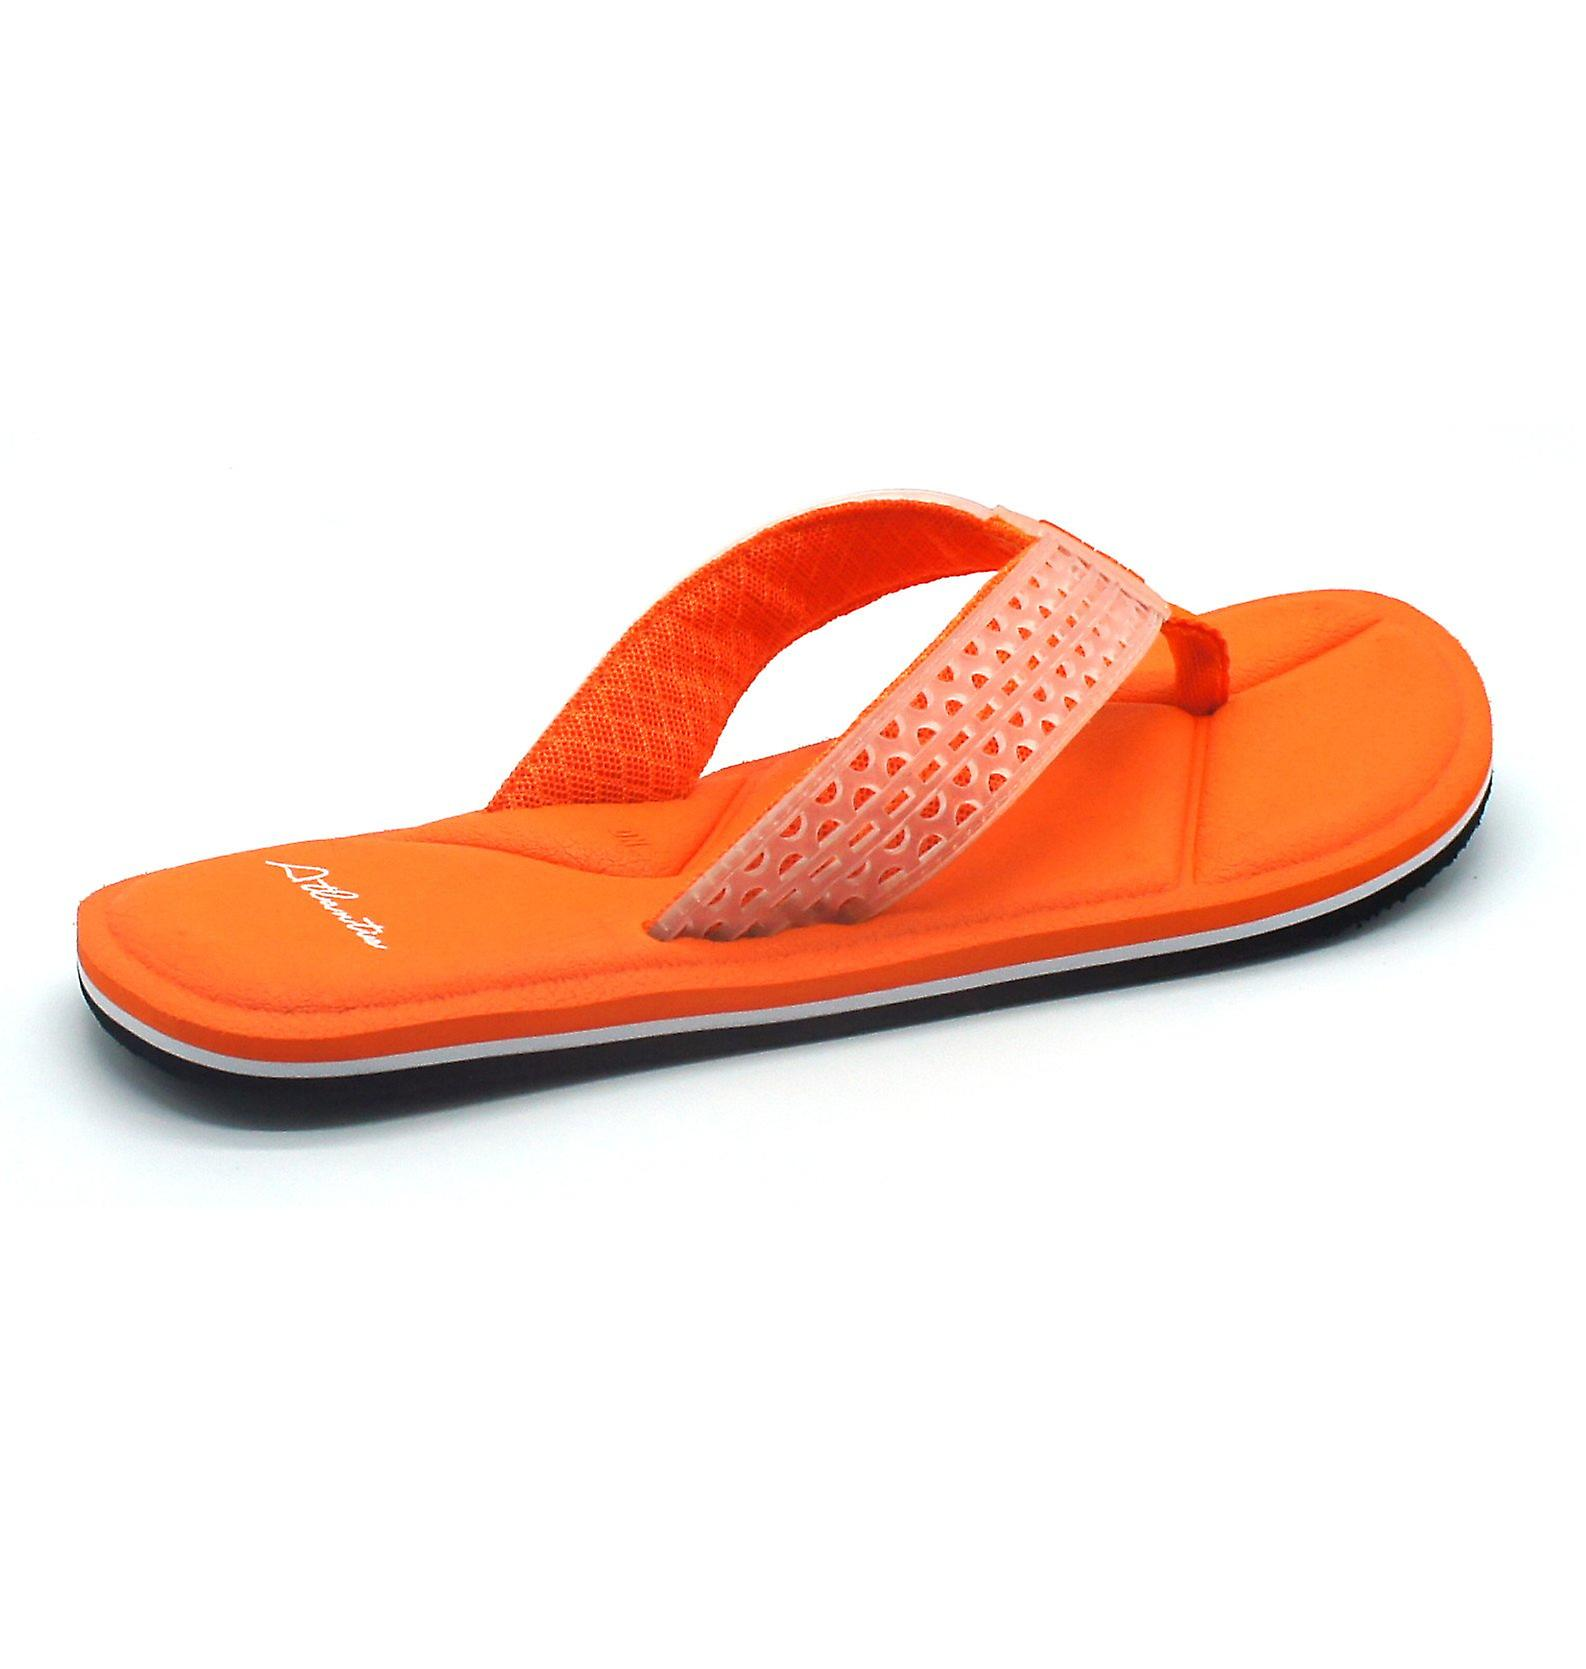 Atlantis Shoes Men Supportive Cushioned Comfortable Sandals Flip Flops Simply Colorful Orange